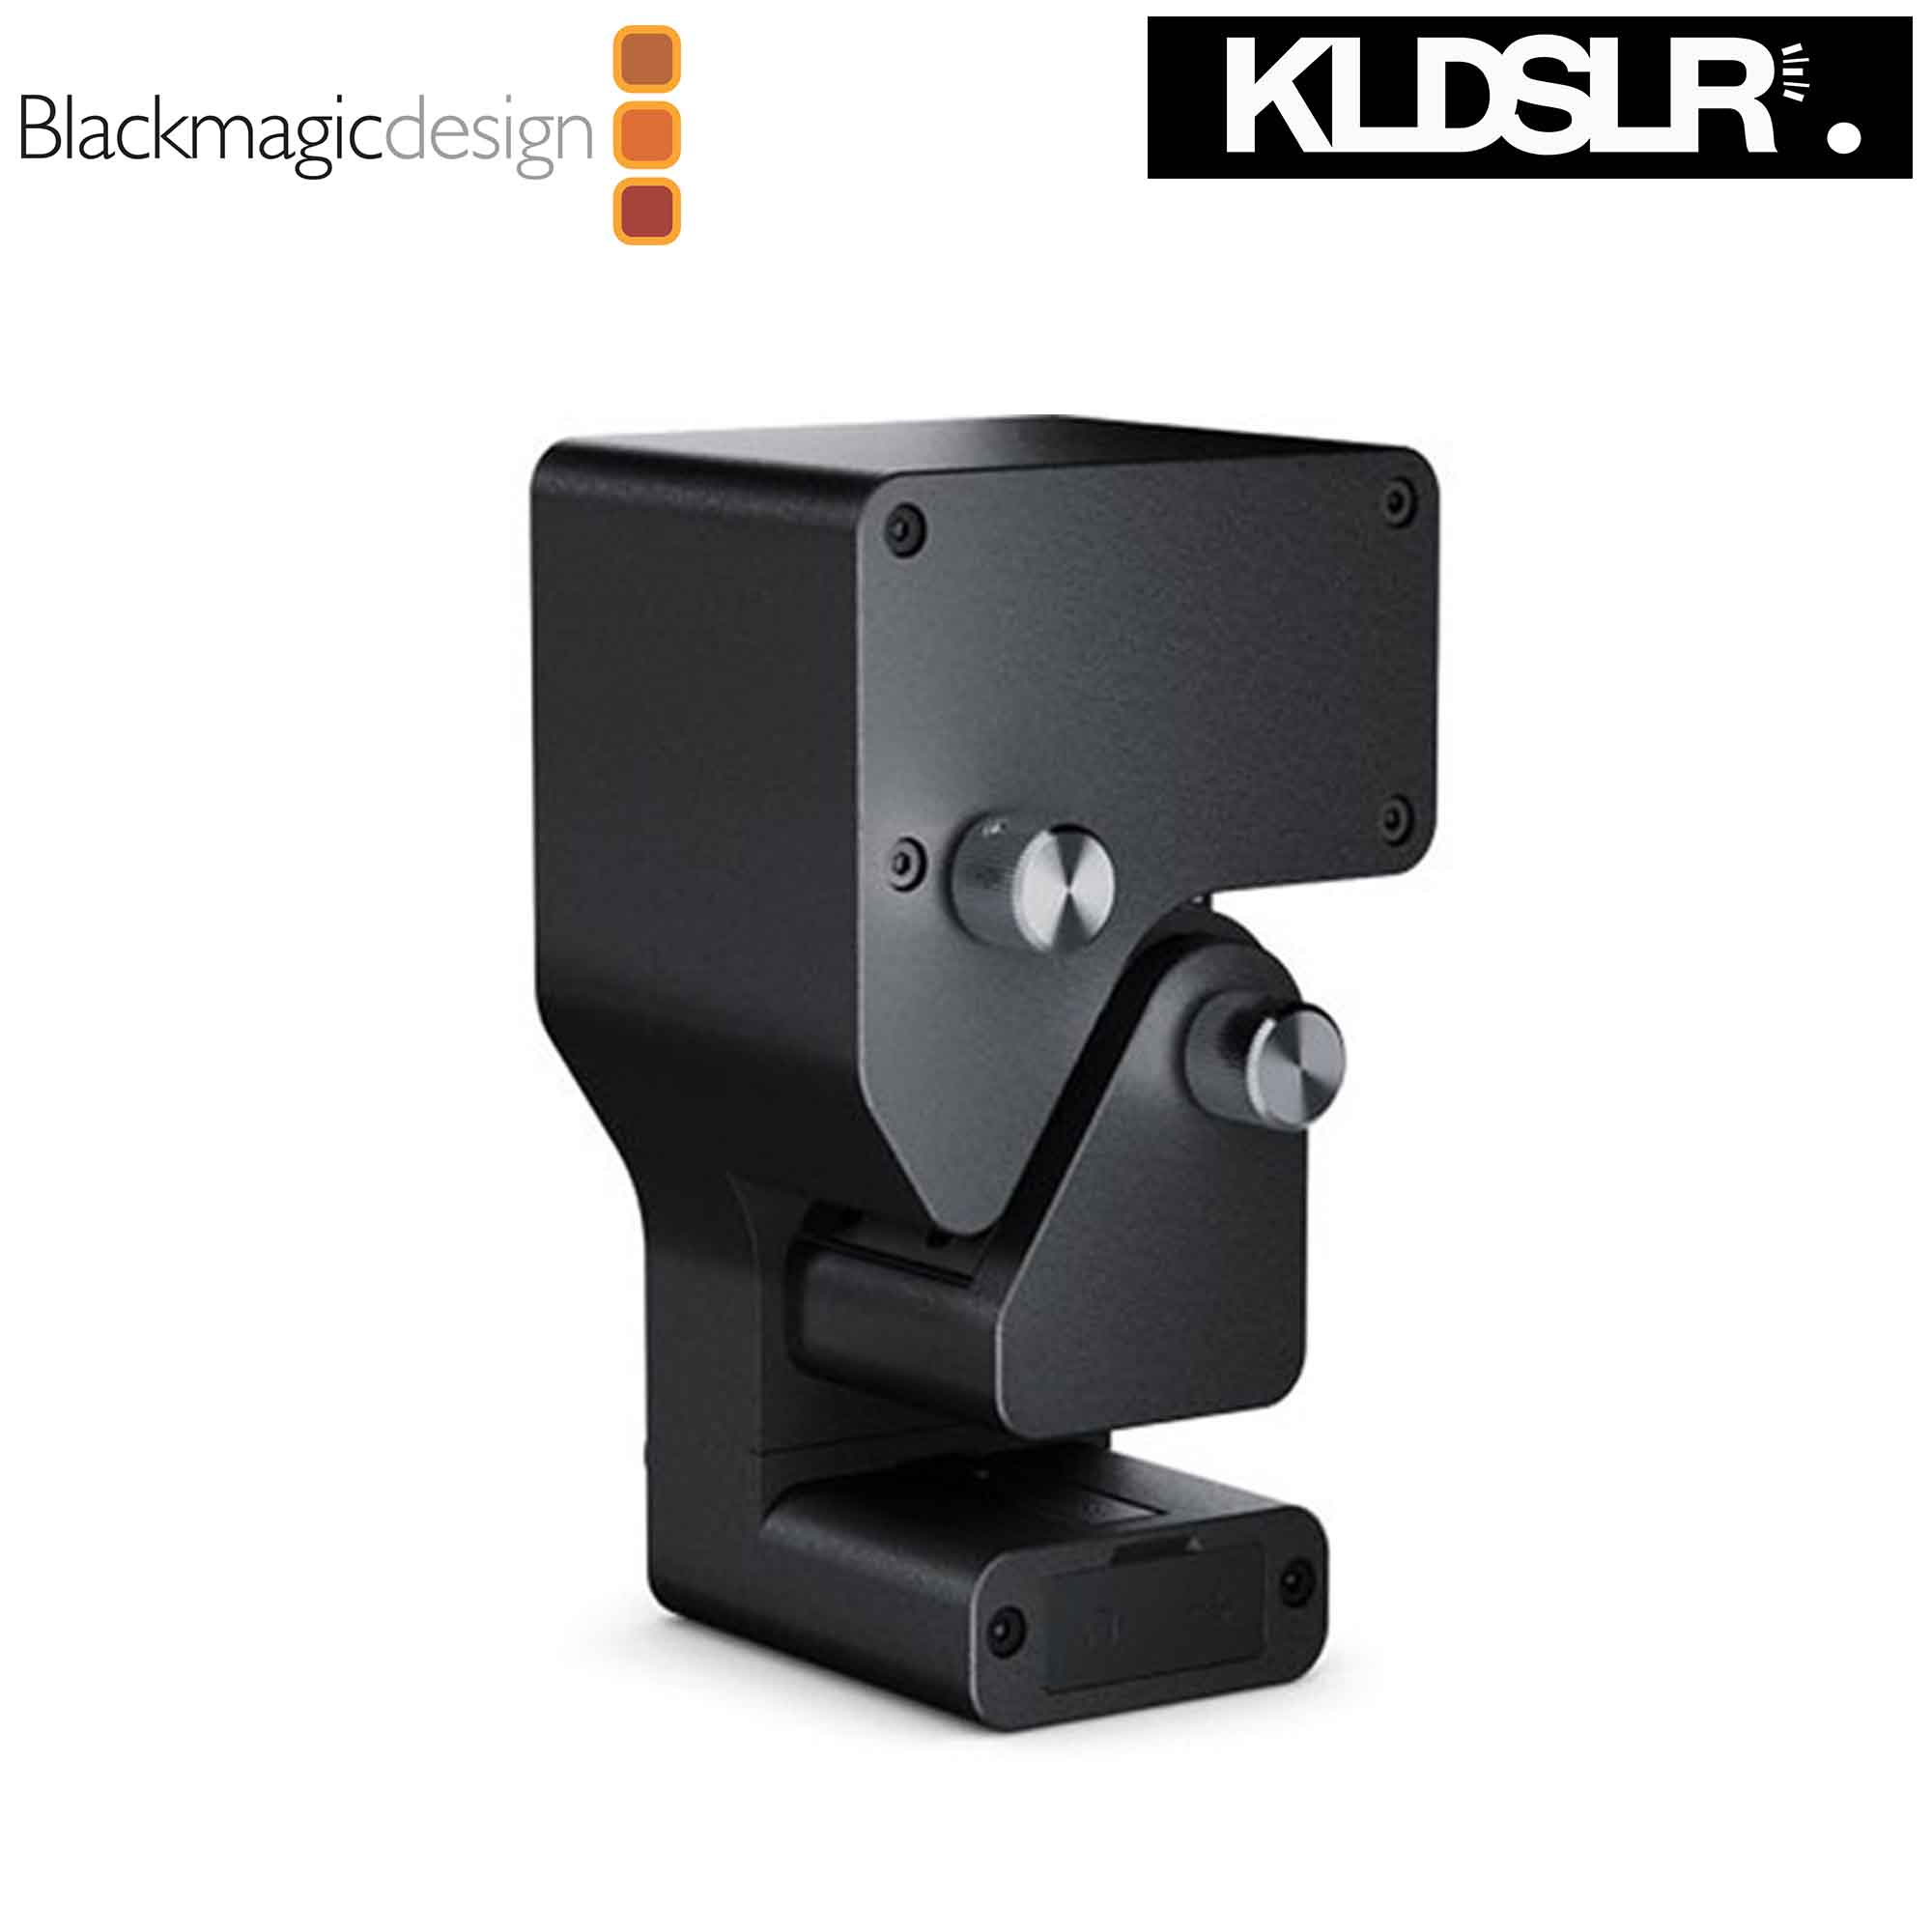 Blackmagic Design Audio and KeyKode Reader for Cintel Scanner (Blackmagic Malaysia)